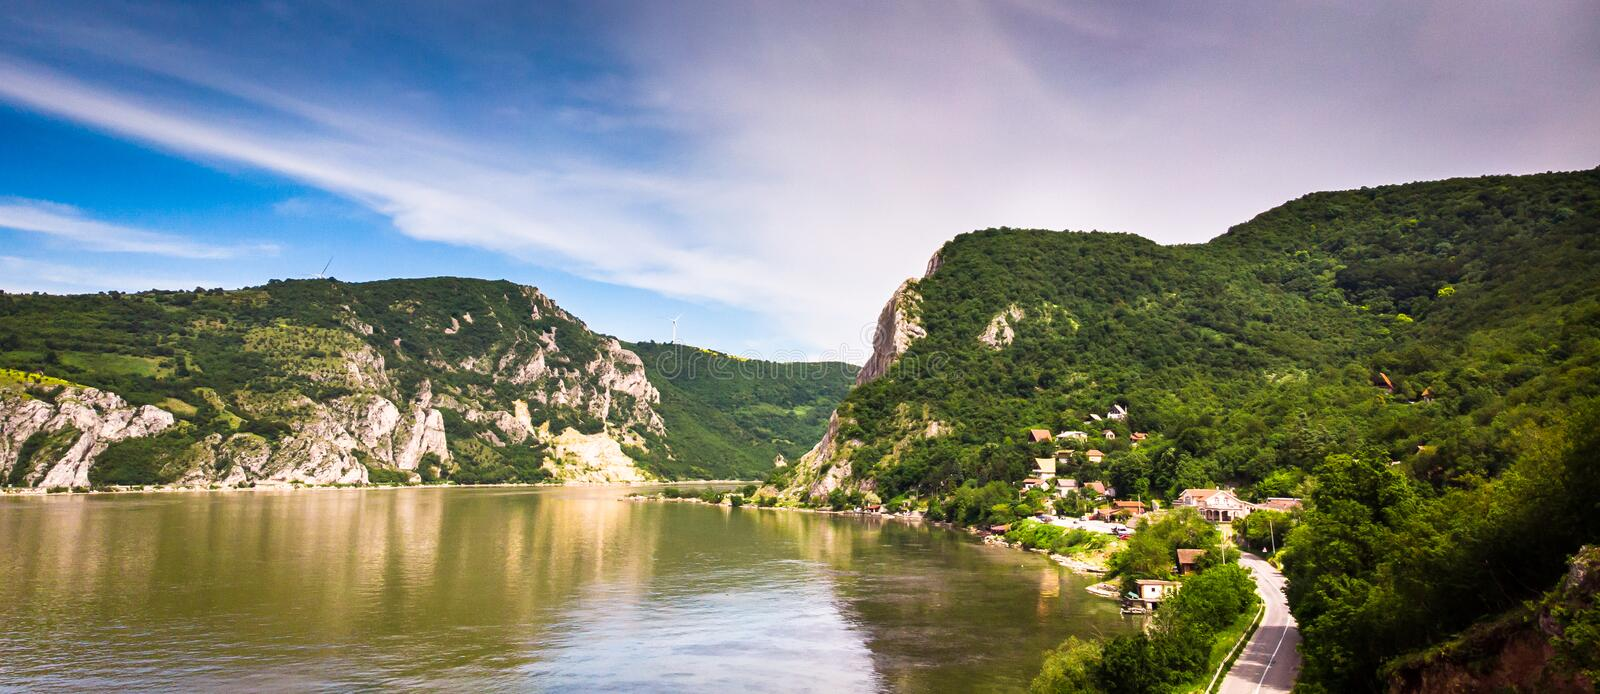 Aerial view of Danube river gorge in national park Djerdap in Serbia. Serbian and Romanian border stock photography